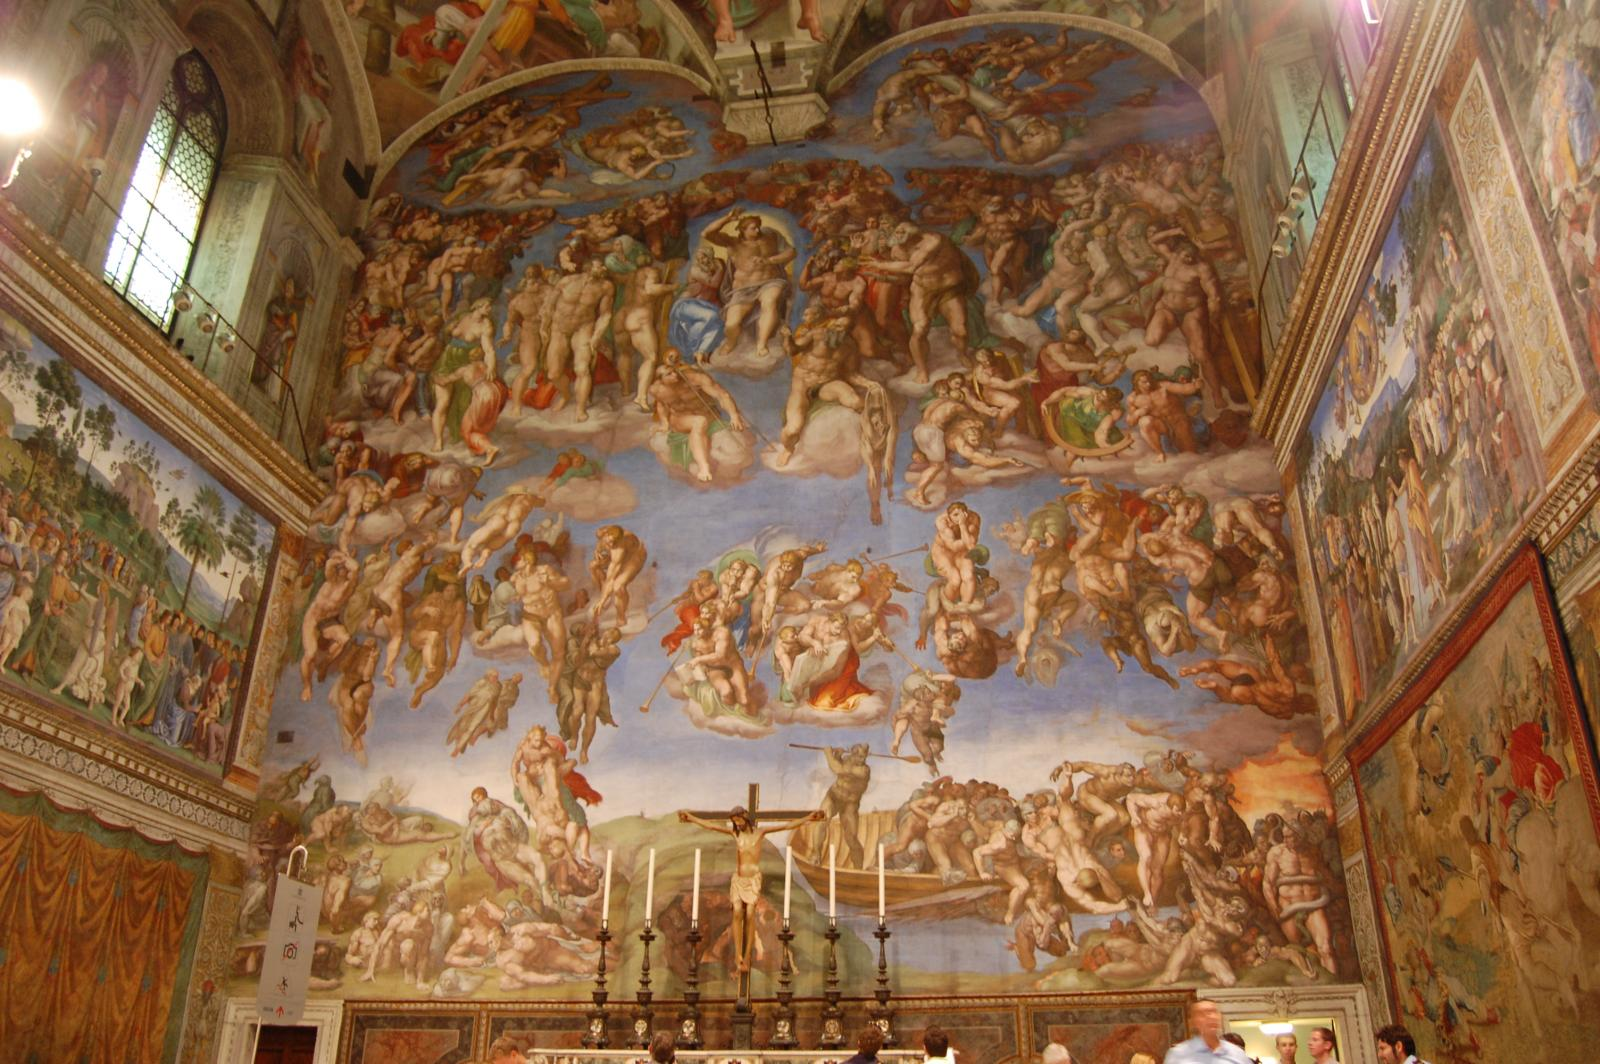 Vaticano - Musei Vaticani - Cappella Sistina - The Last Judgment (can you find Michelangelo's self-portrait?)